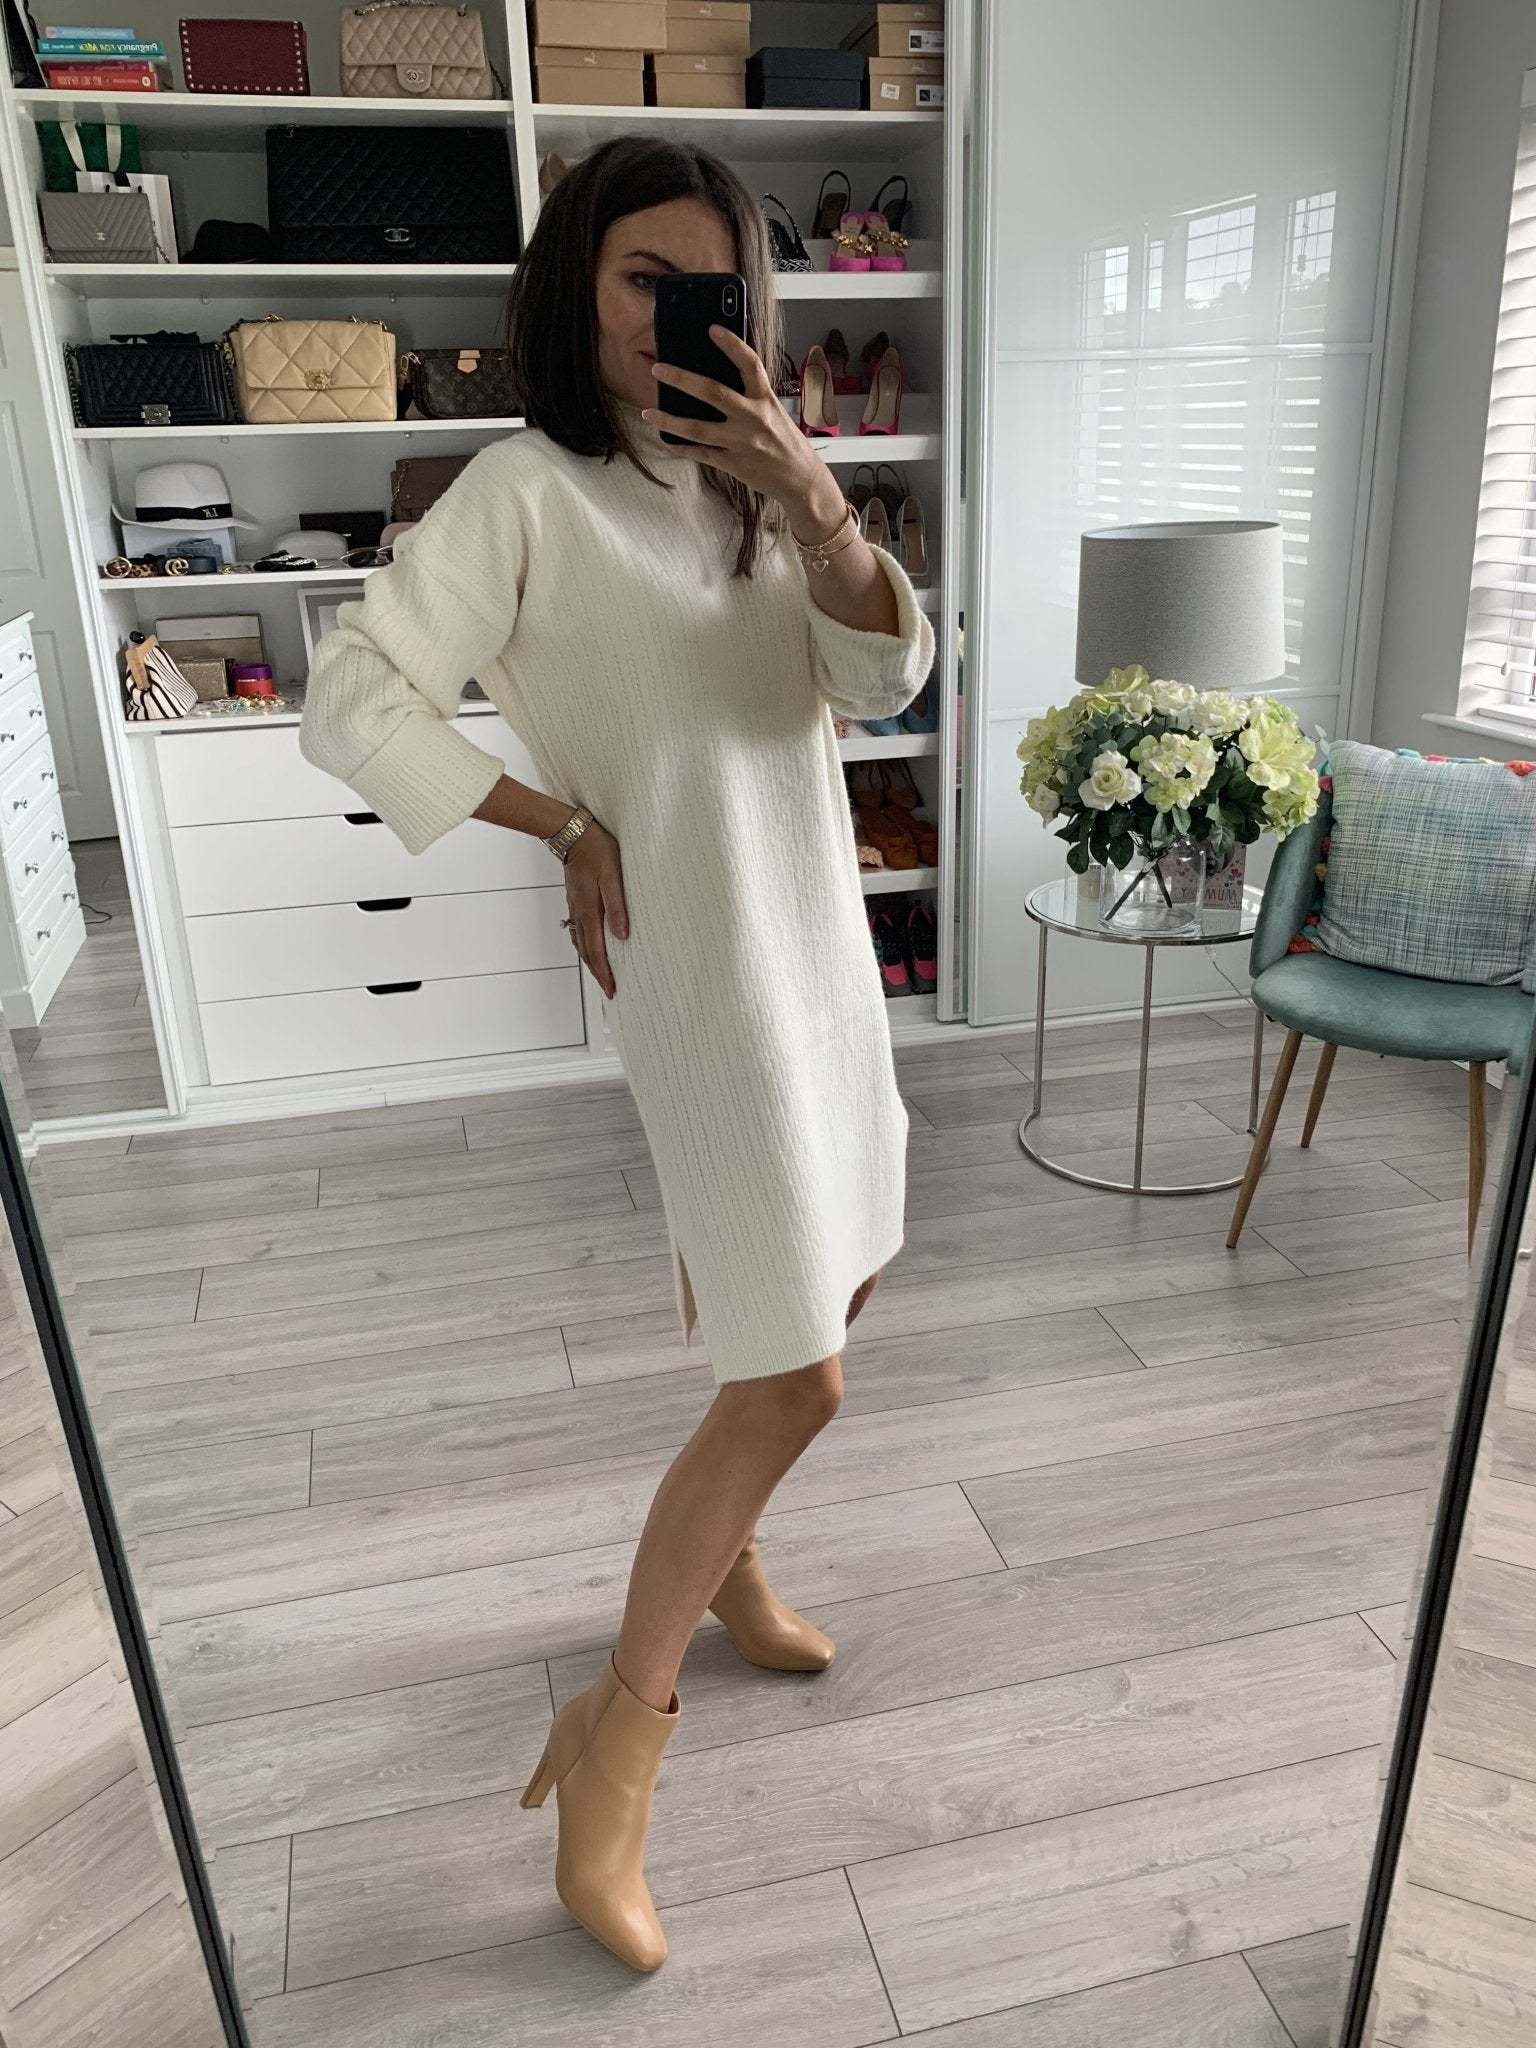 Elsa Knit Dress in Cream - The Walk in Wardrobe